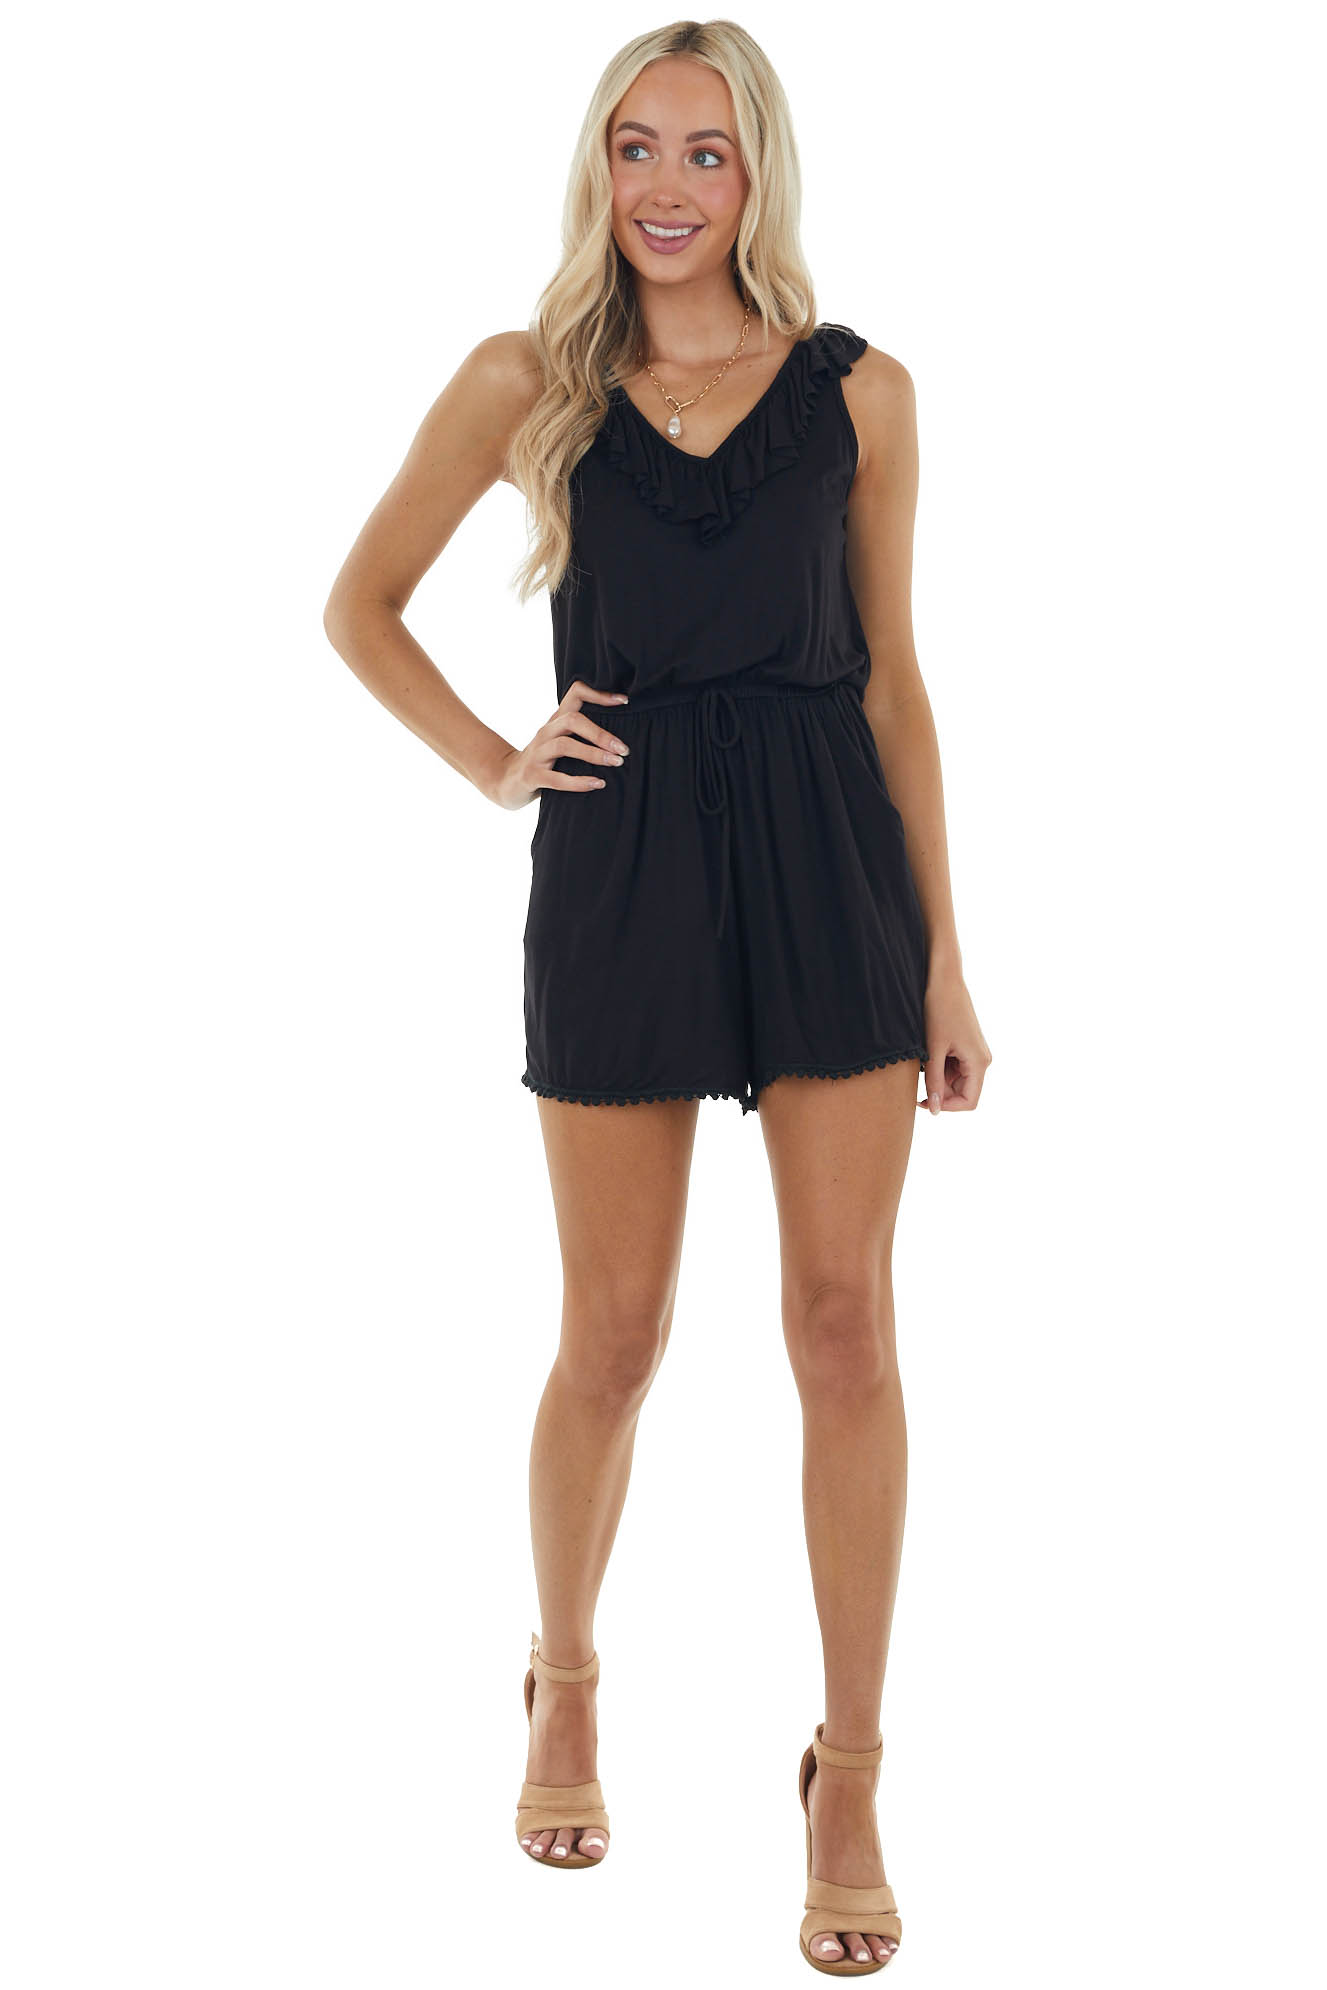 Black Sleeveless Romper with Lace Trim Details